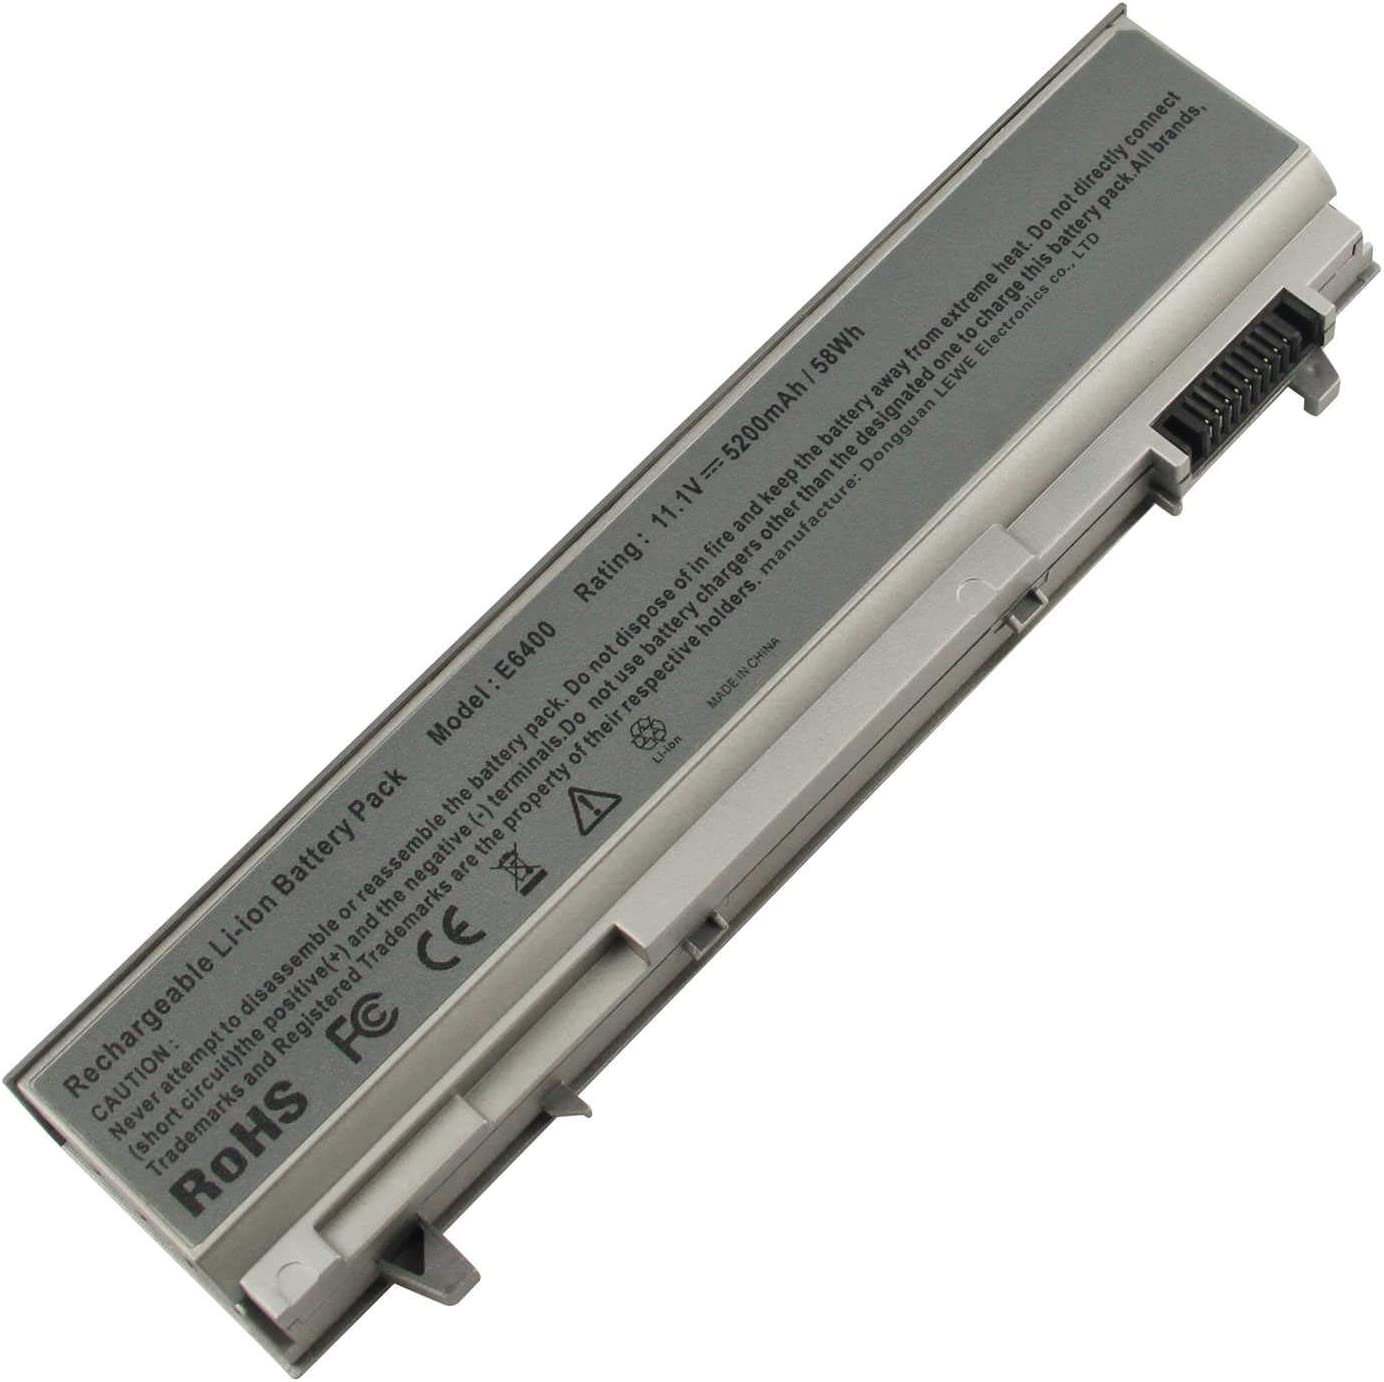 AC Doctor INC 5200mAh Battery for Dell Latitude E6400 E6410 E6500 E6510 Precision M2400 M4400 M4500 M6500 Laptop Battry Replacement 4M529 KY265 PT434 312-0749